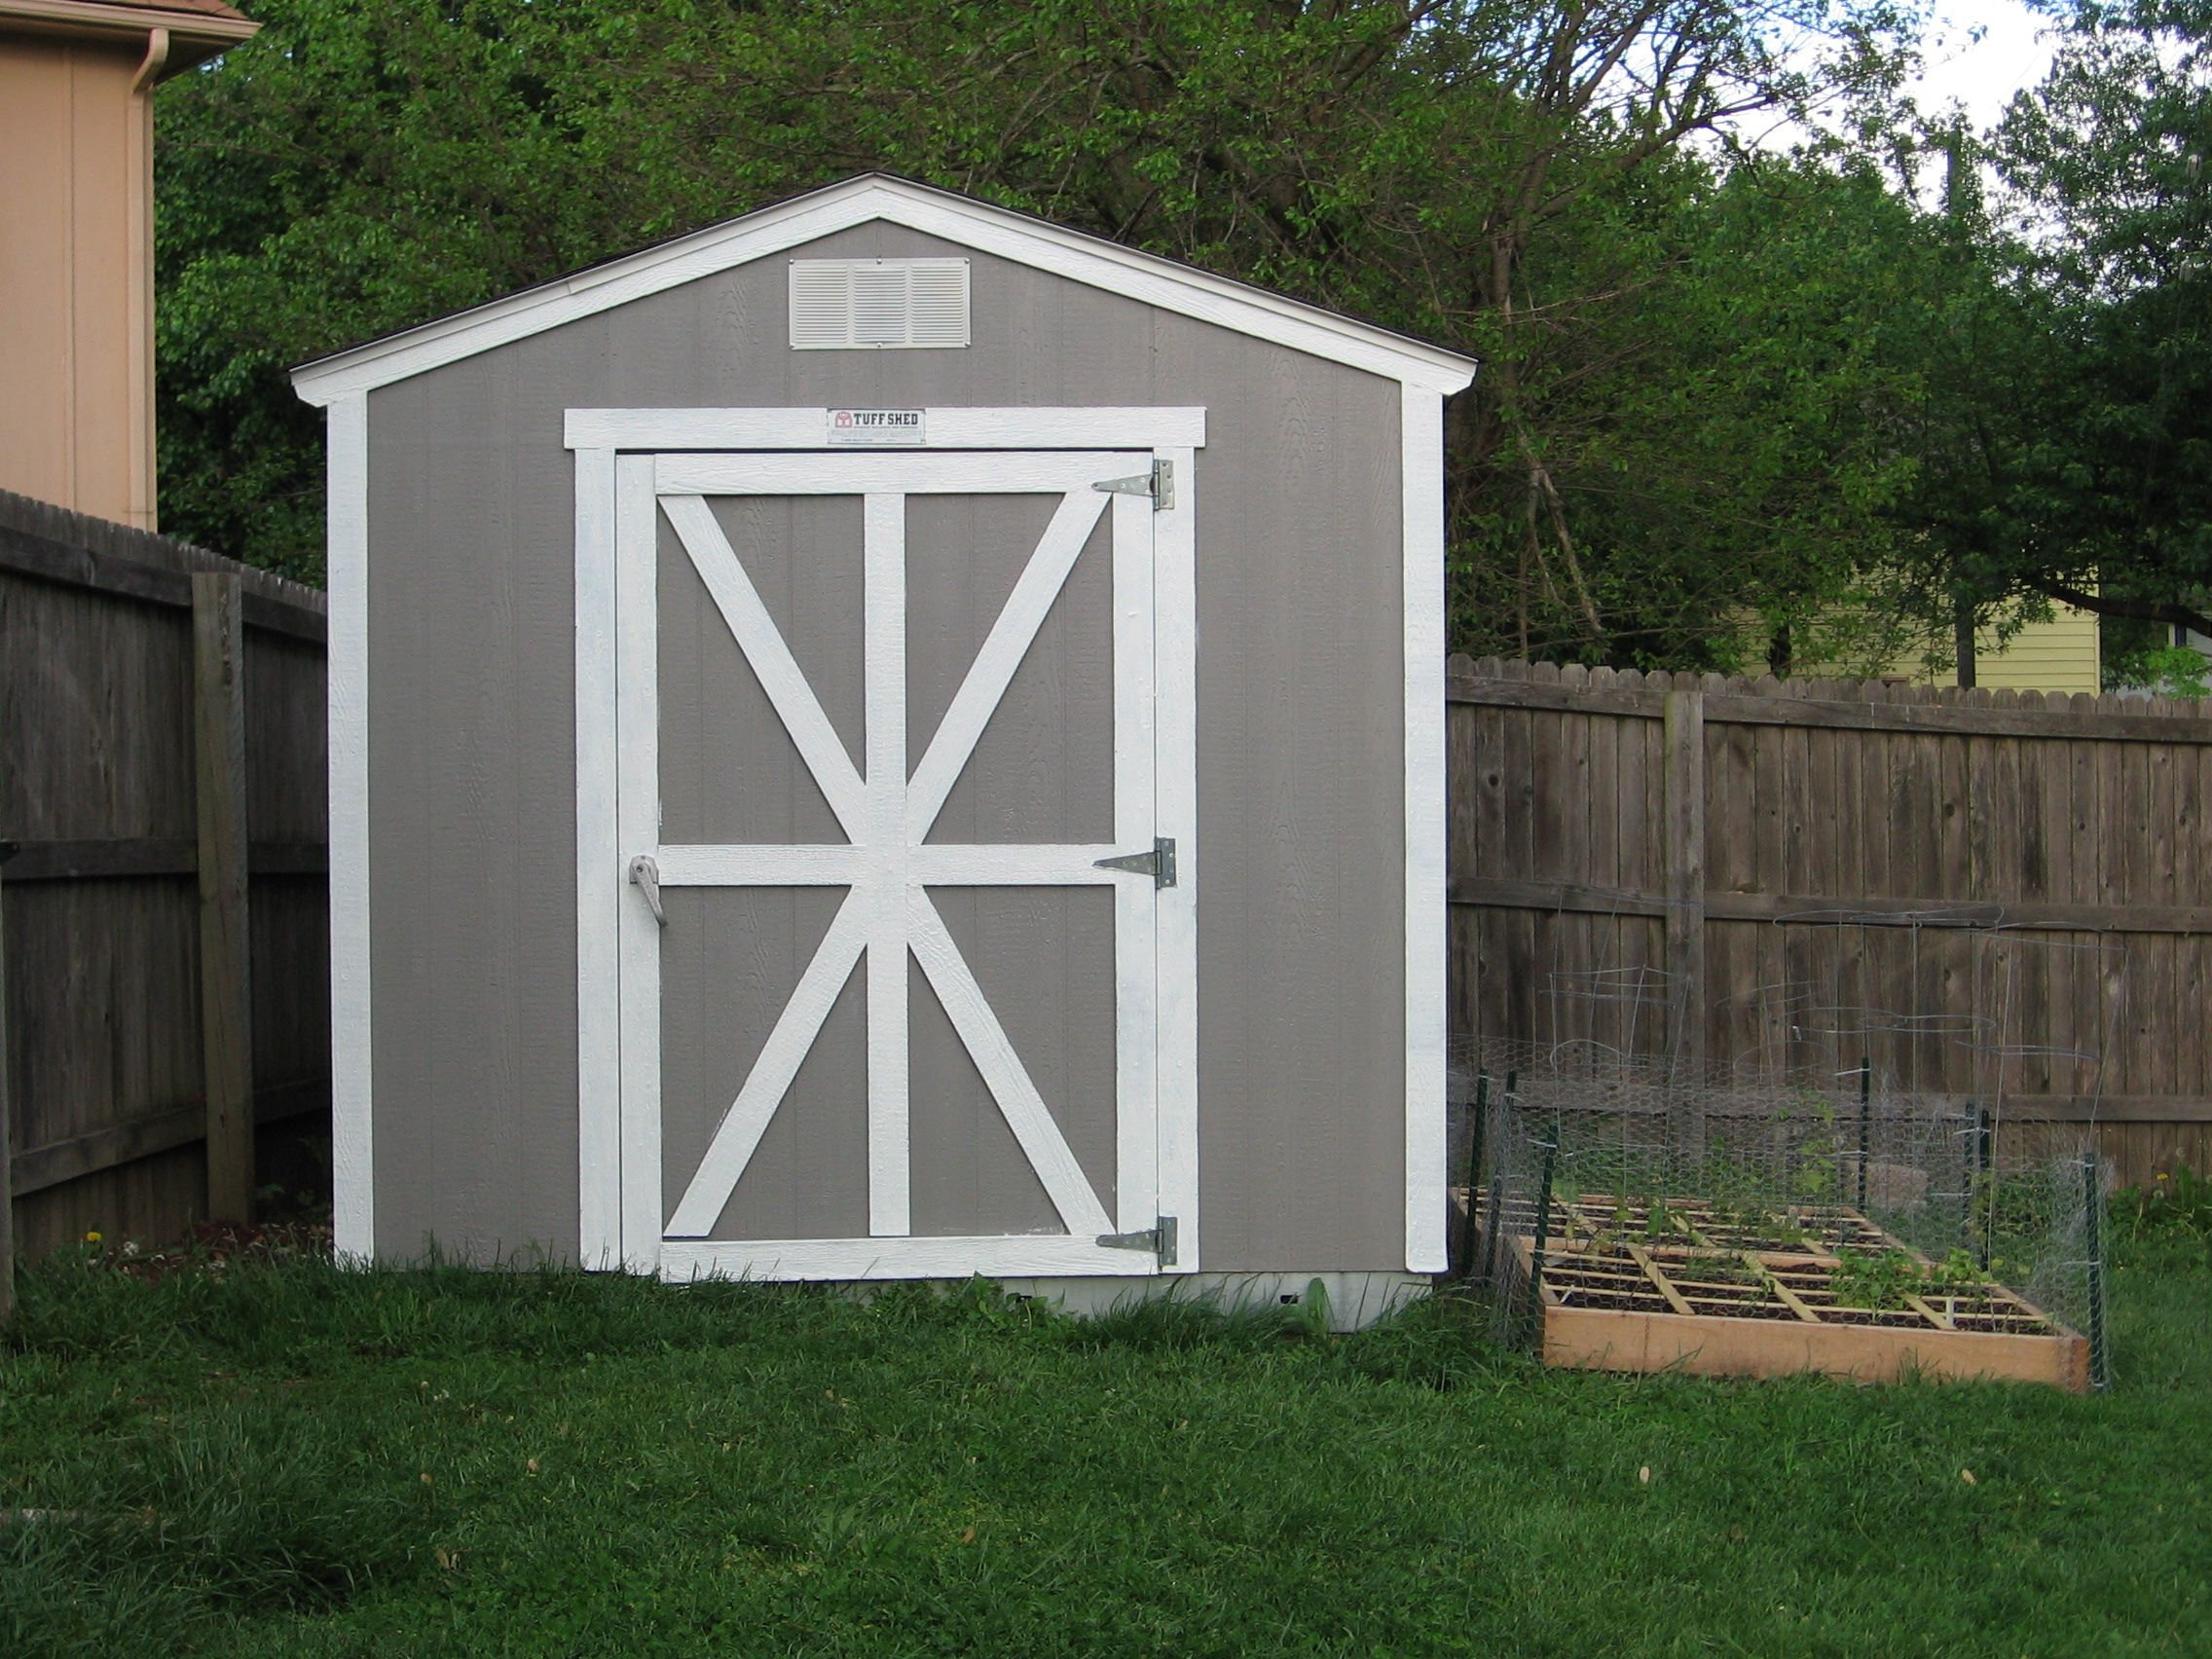 Shed Door Design Ideas diy double barn door plans Barn Shed Door Panel Ideas Nice Gray Wooden Small Shed Ideas With Single Large Door